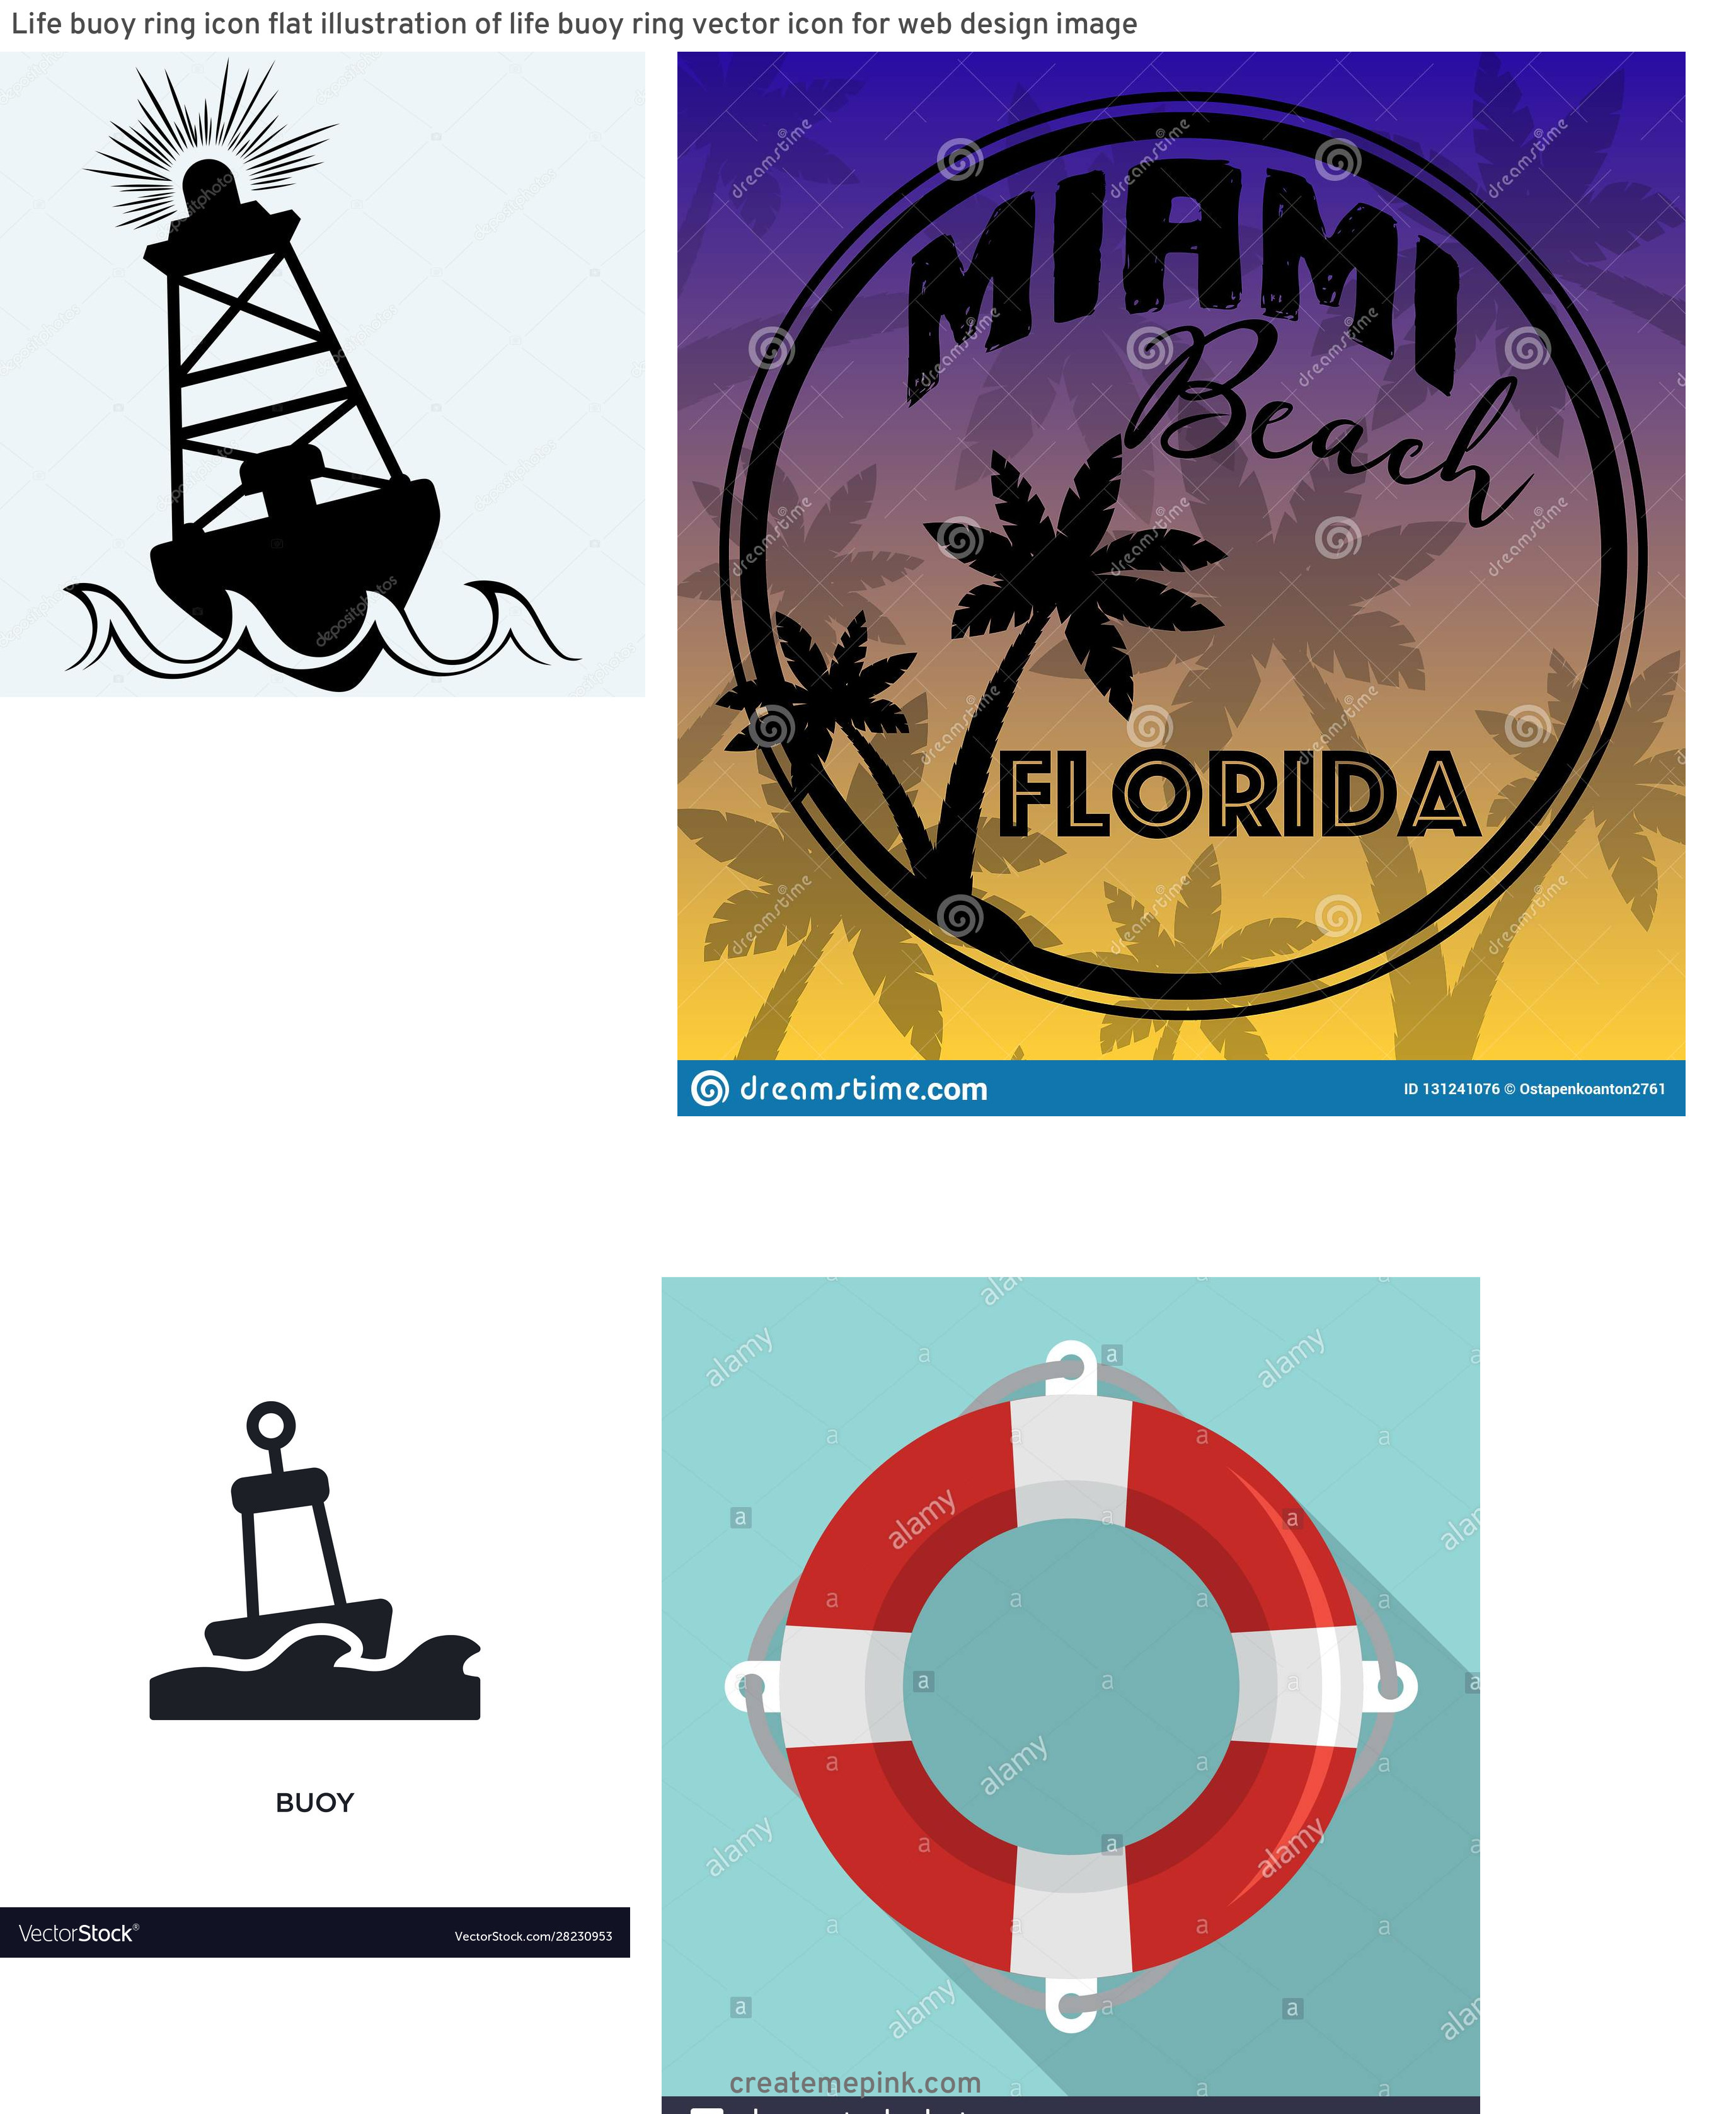 Buoy Silhouette Vector: Life Buoy Ring Icon Flat Illustration Of Life Buoy Ring Vector Icon For Web Design Image